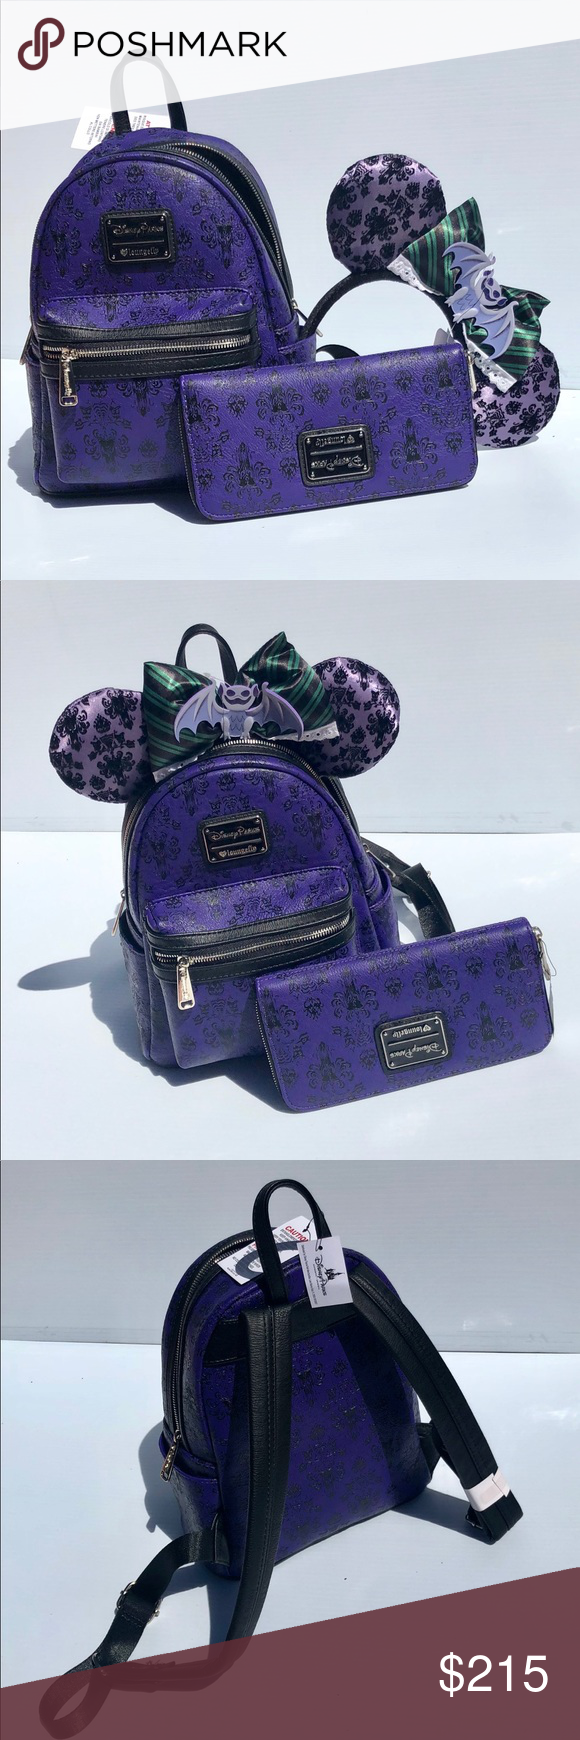 a09da52d57b Haunted Mansion Mini Backpack Set - Loungefly Disney Parks Exclusive Haunted  Mansion Backpack and Wallet by